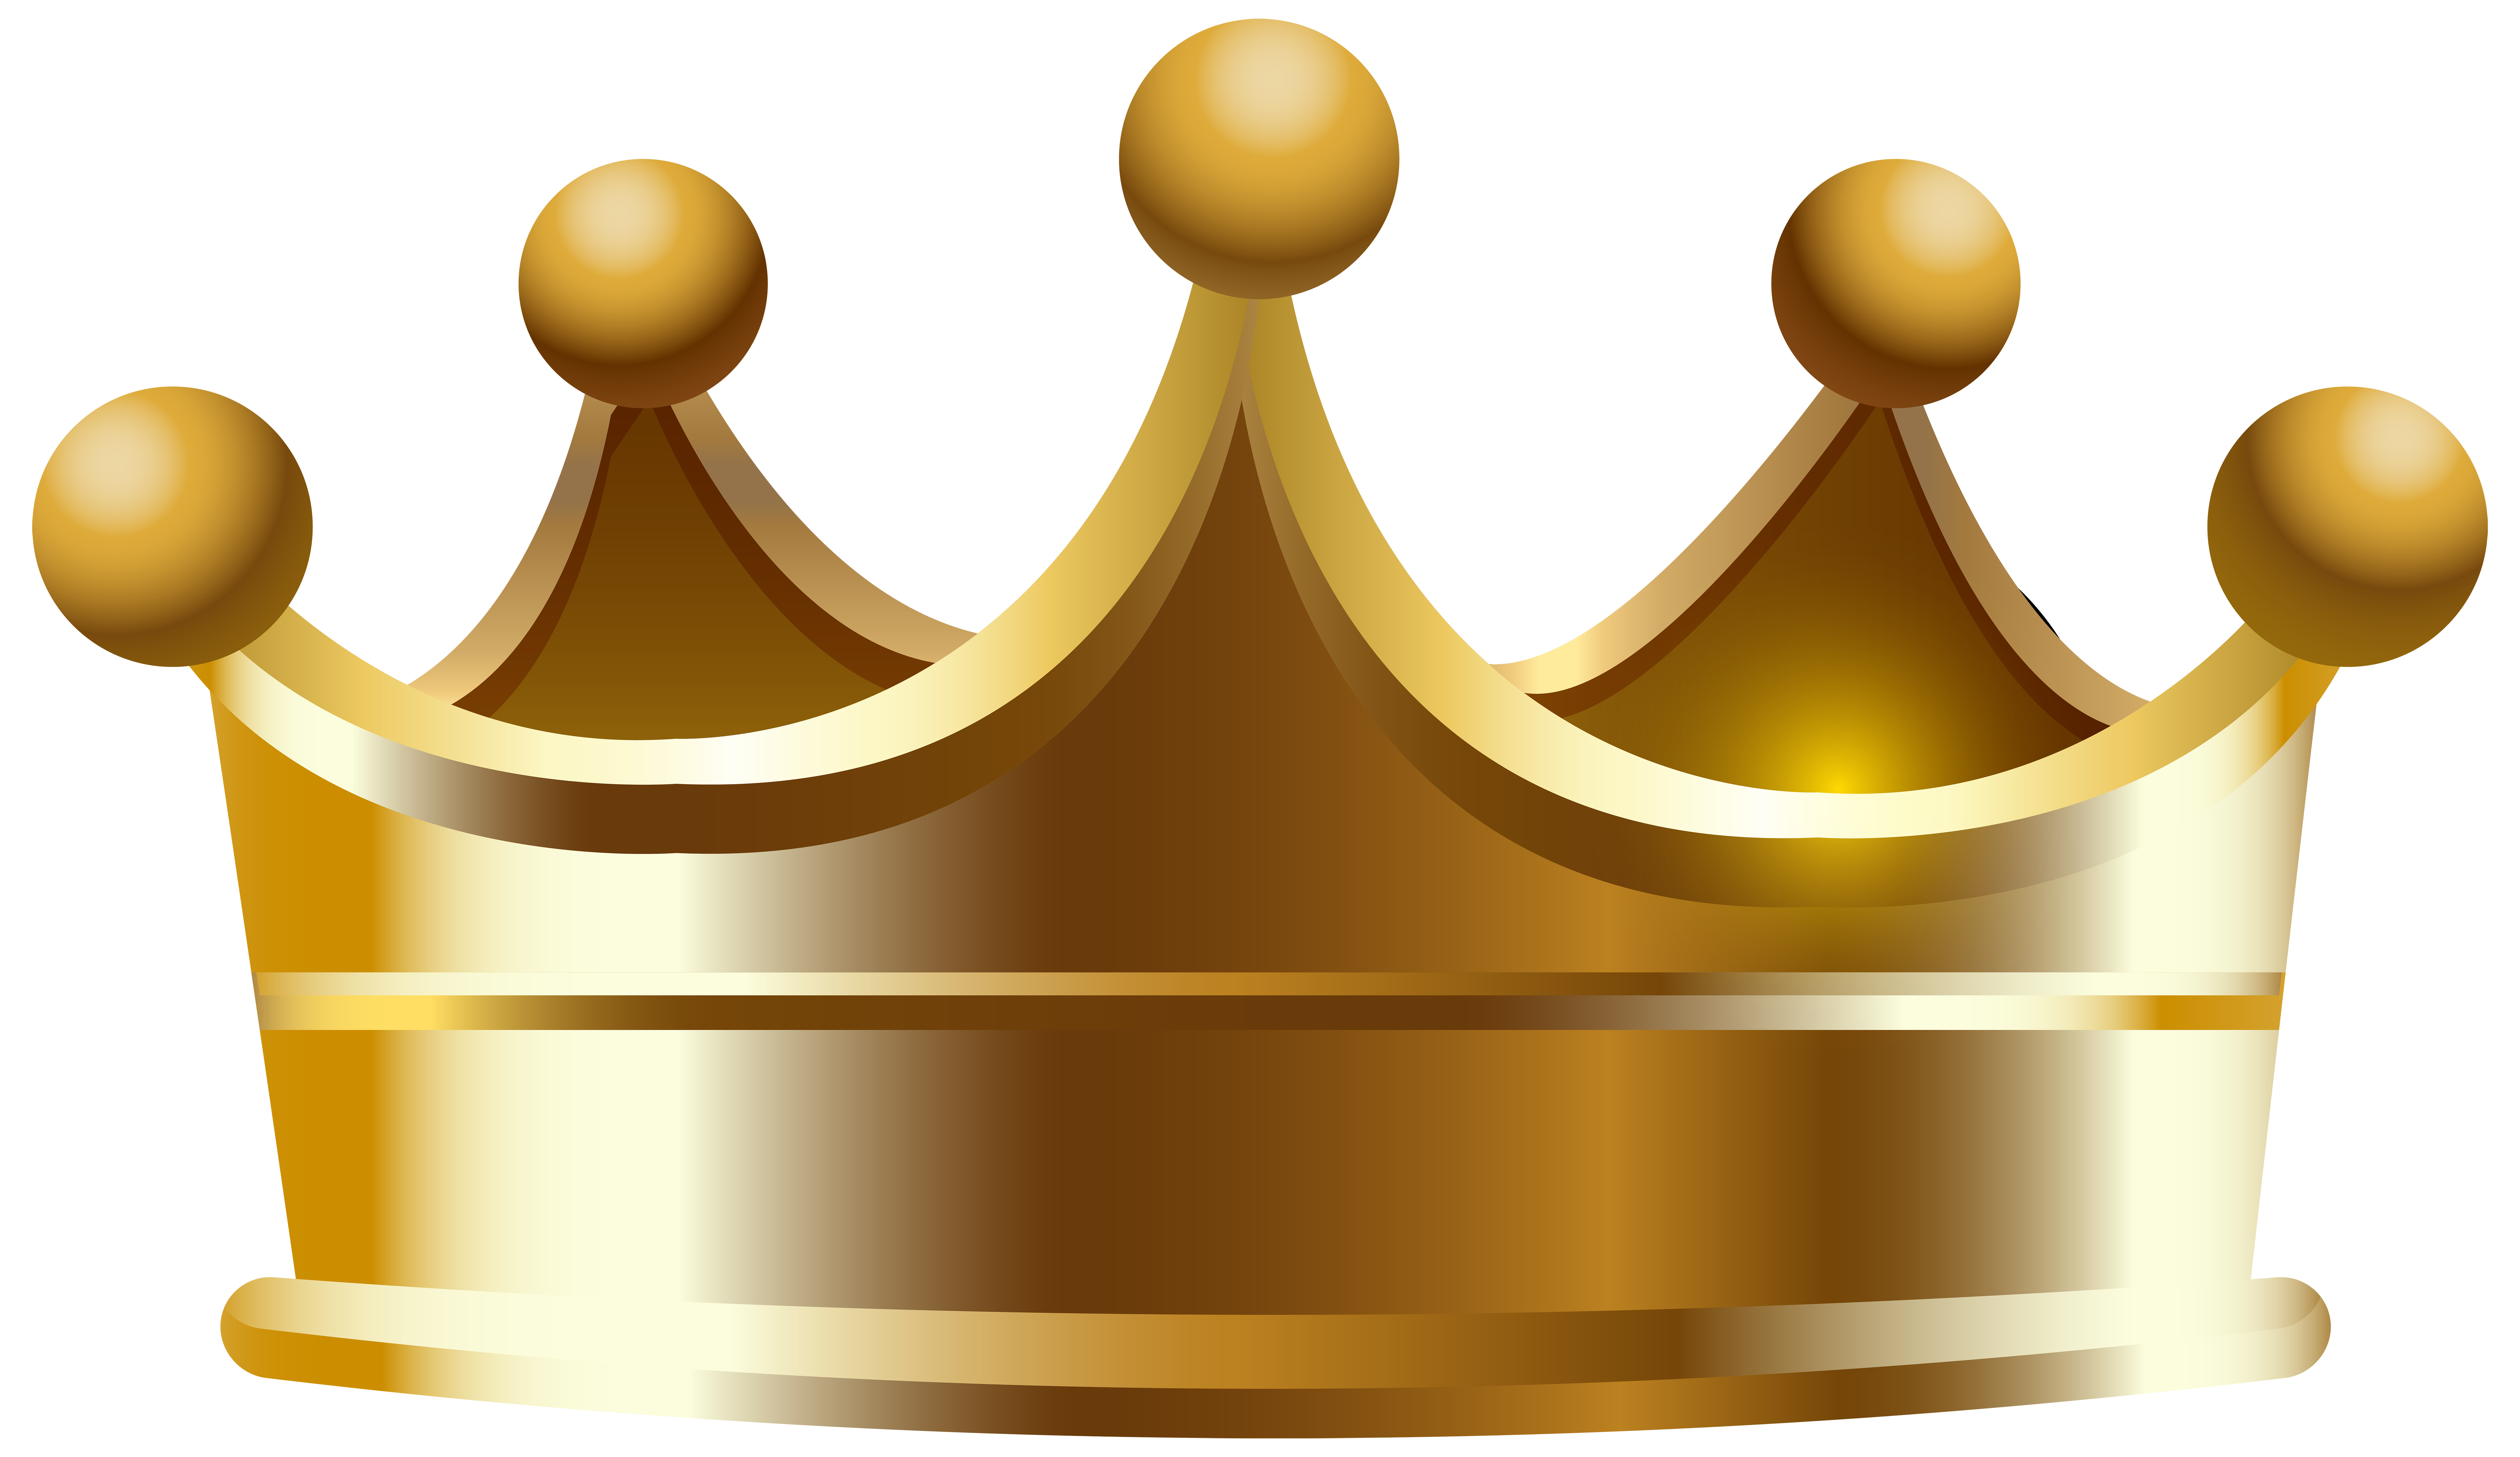 8000x4625 Gold Crown Clipart Transparent Background Collection